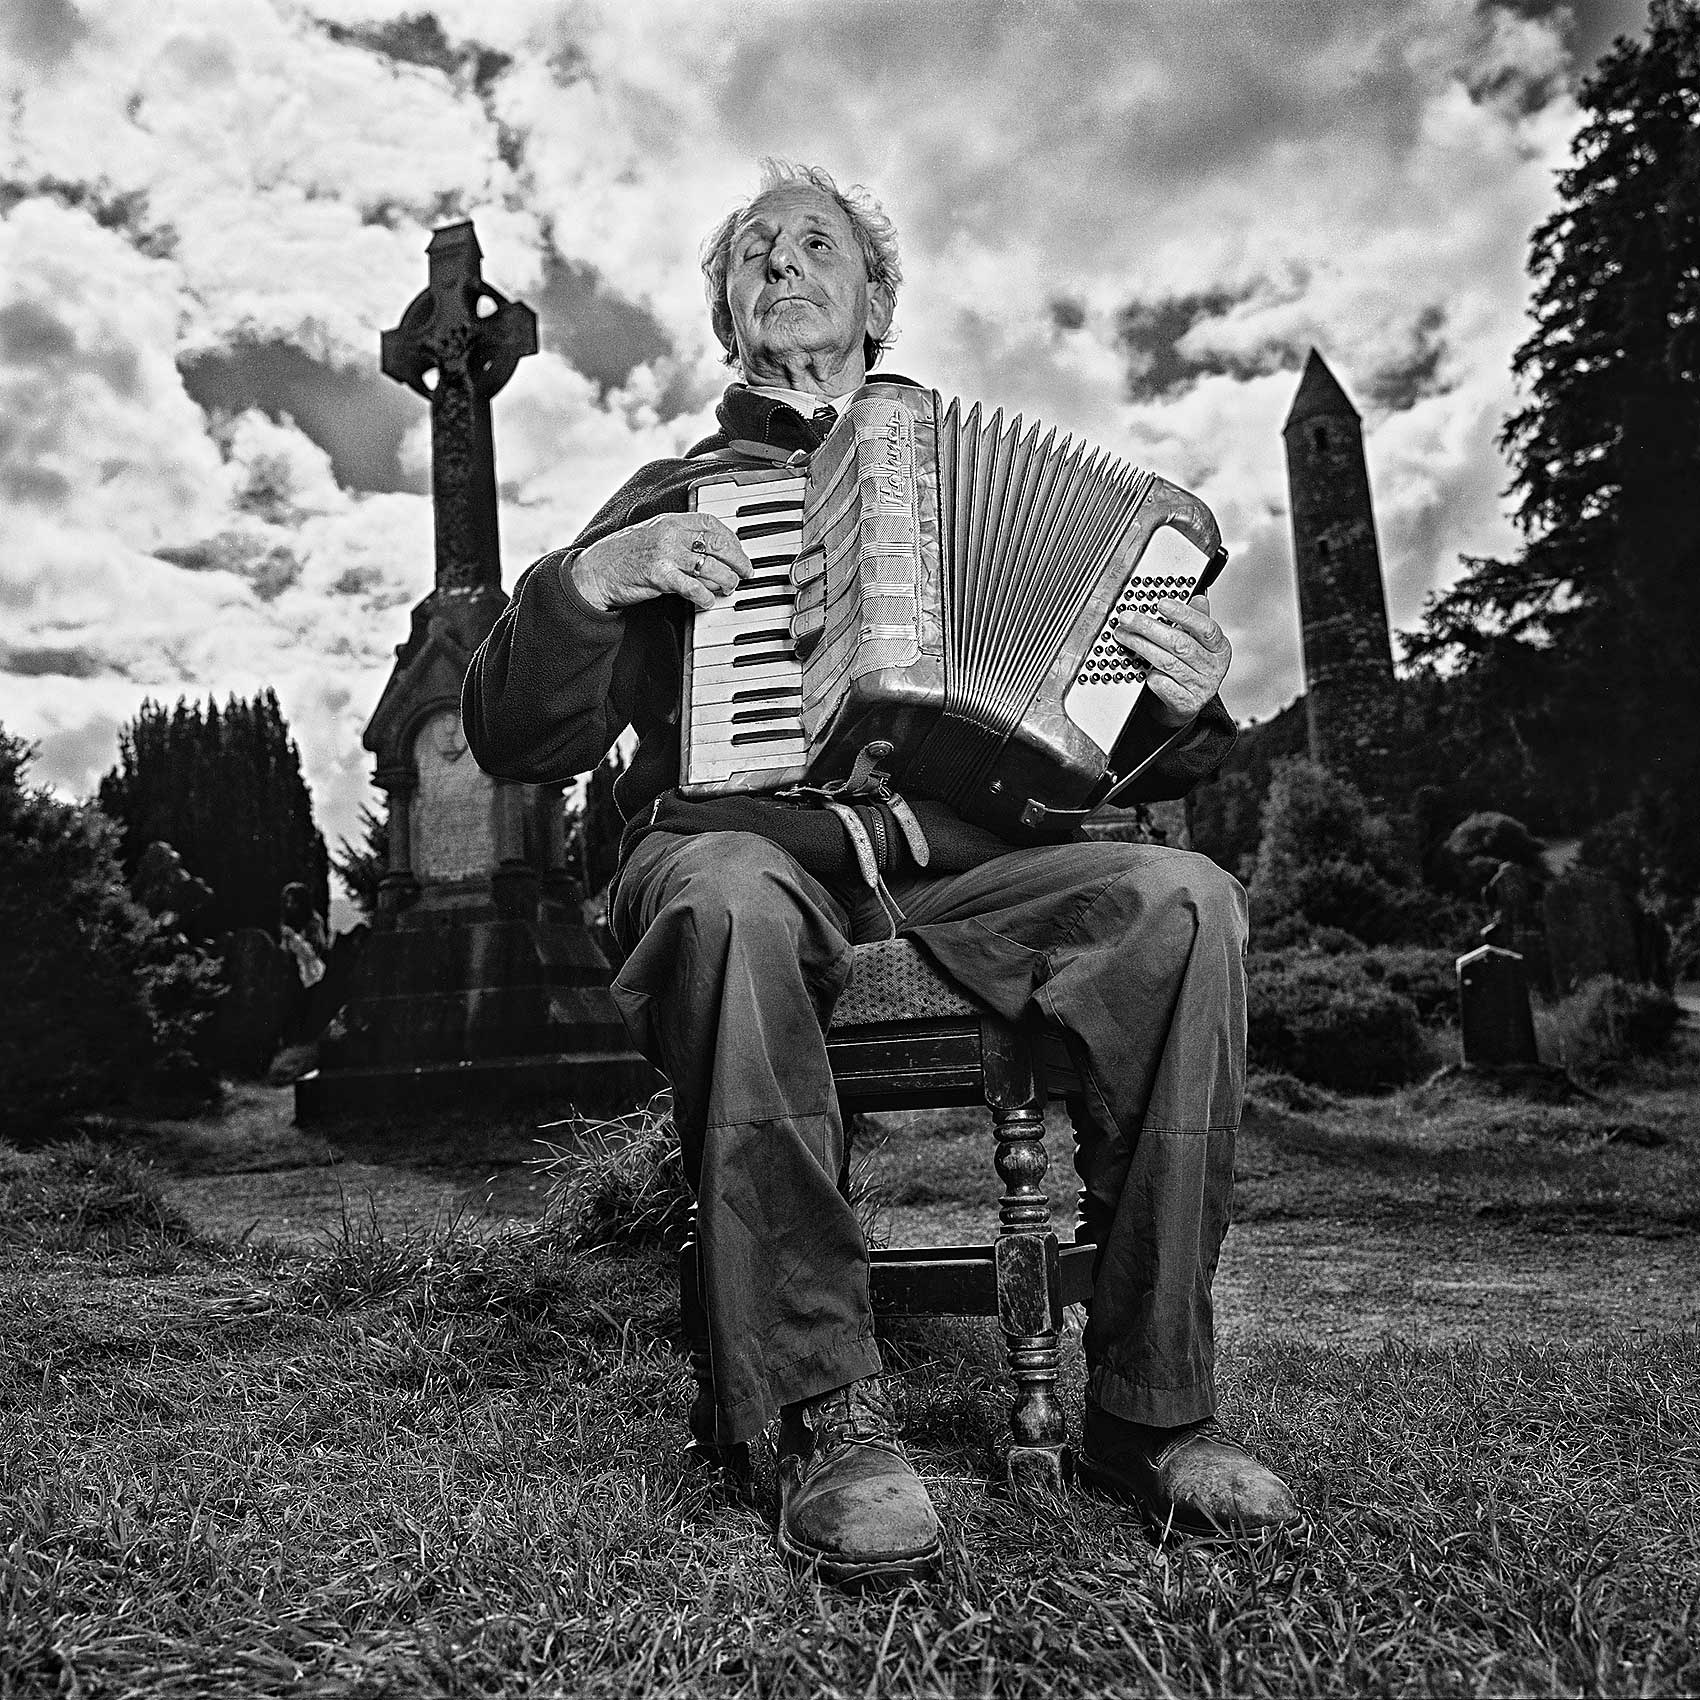 an-old-blind-irish-man-plays-the-accordion-in-a-graveyard